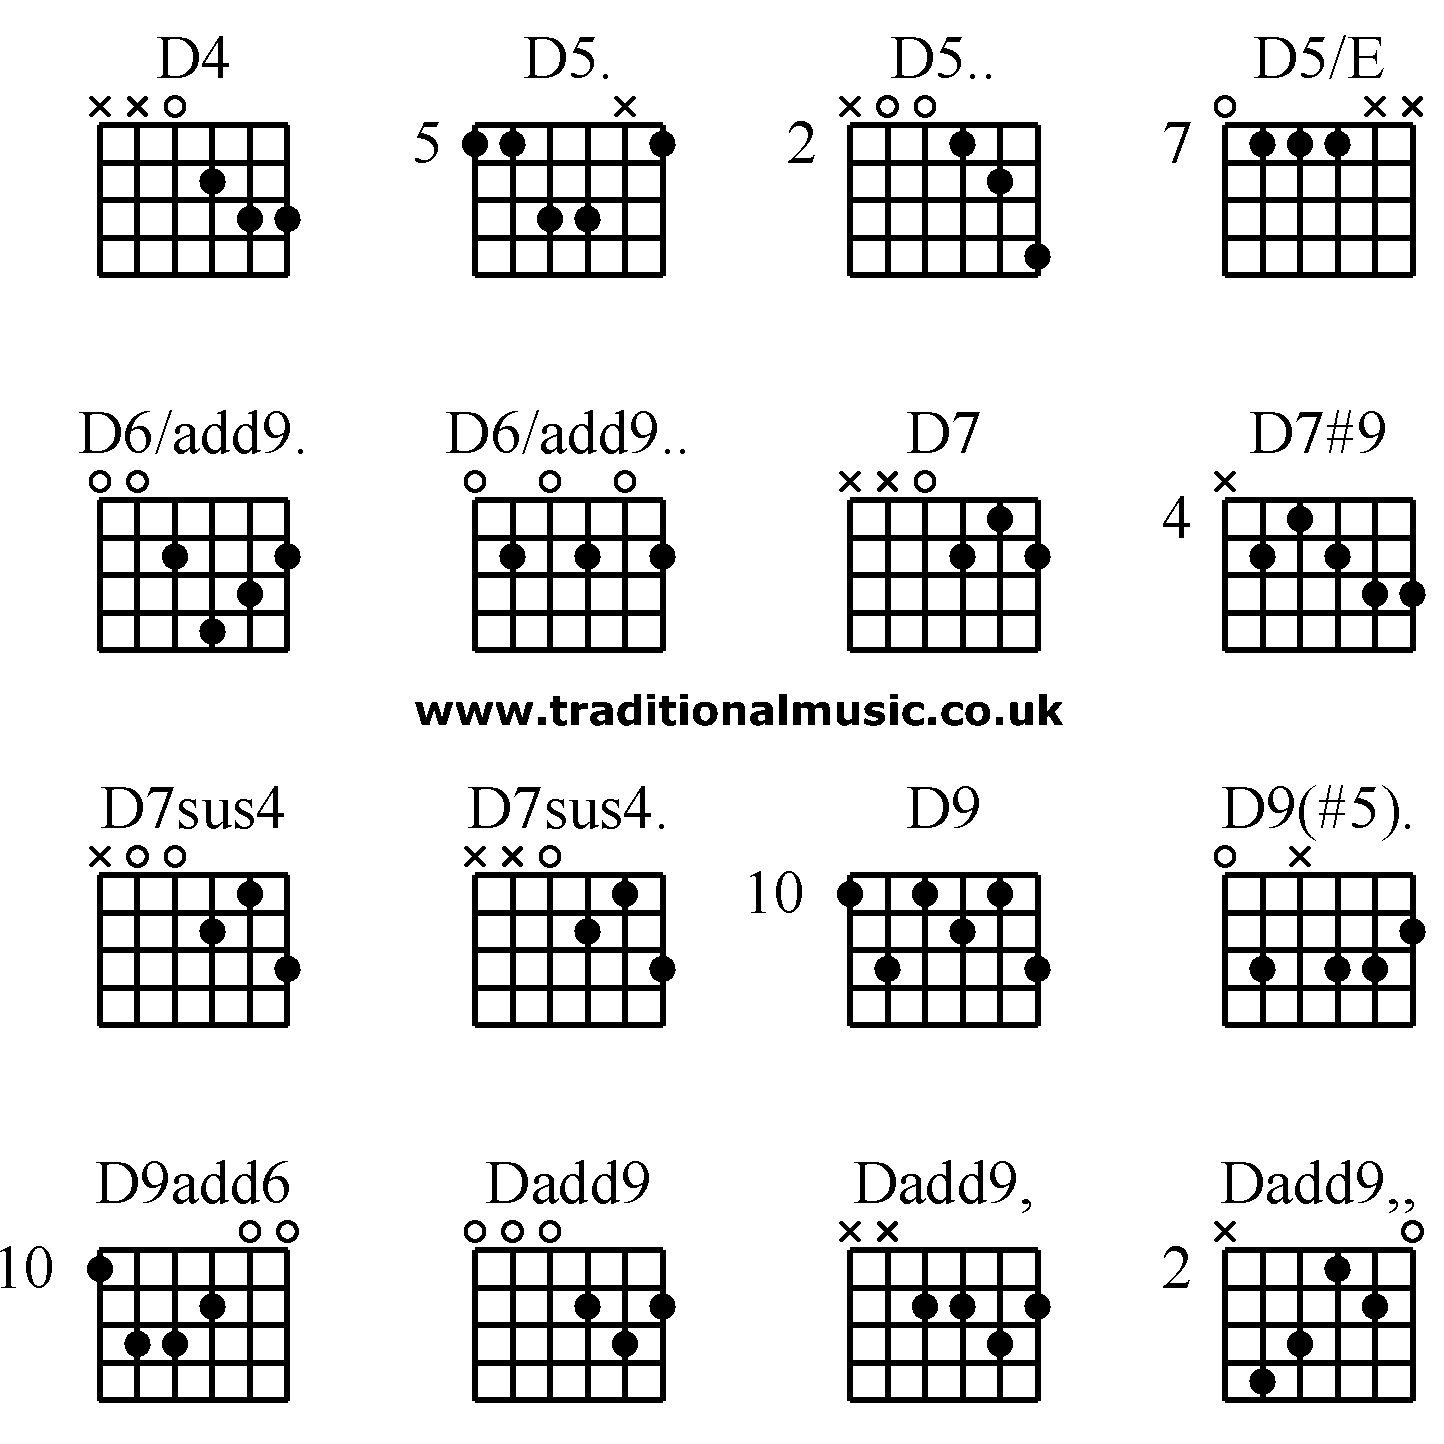 Guitar Chords Advanced D4 D5 D5 D5e D6add9 D6add9 D7 D79